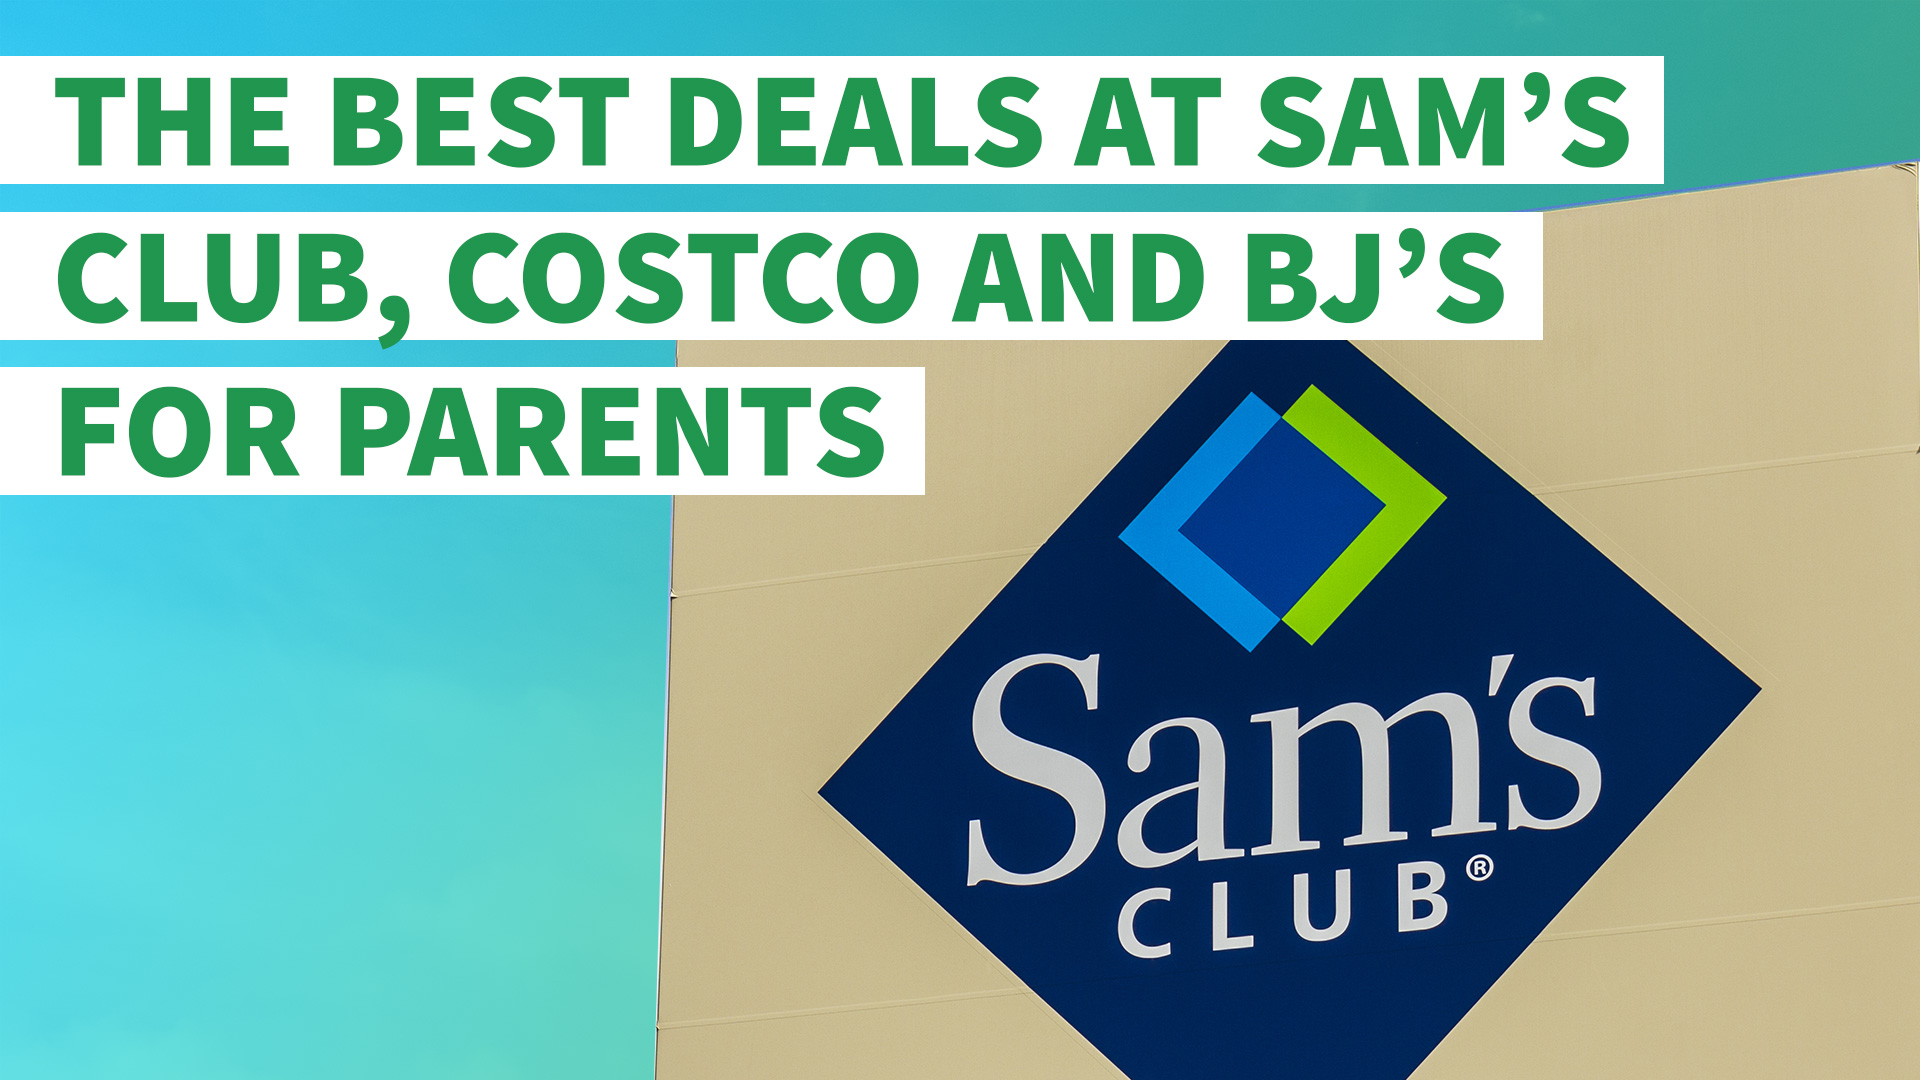 Robust Parents Costco Baby Formula Kirkland Costco Baby Formula Vs Enfamil Deals At Costco And Parents Gobankingrates Deals At Costco And baby Costco Baby Formula